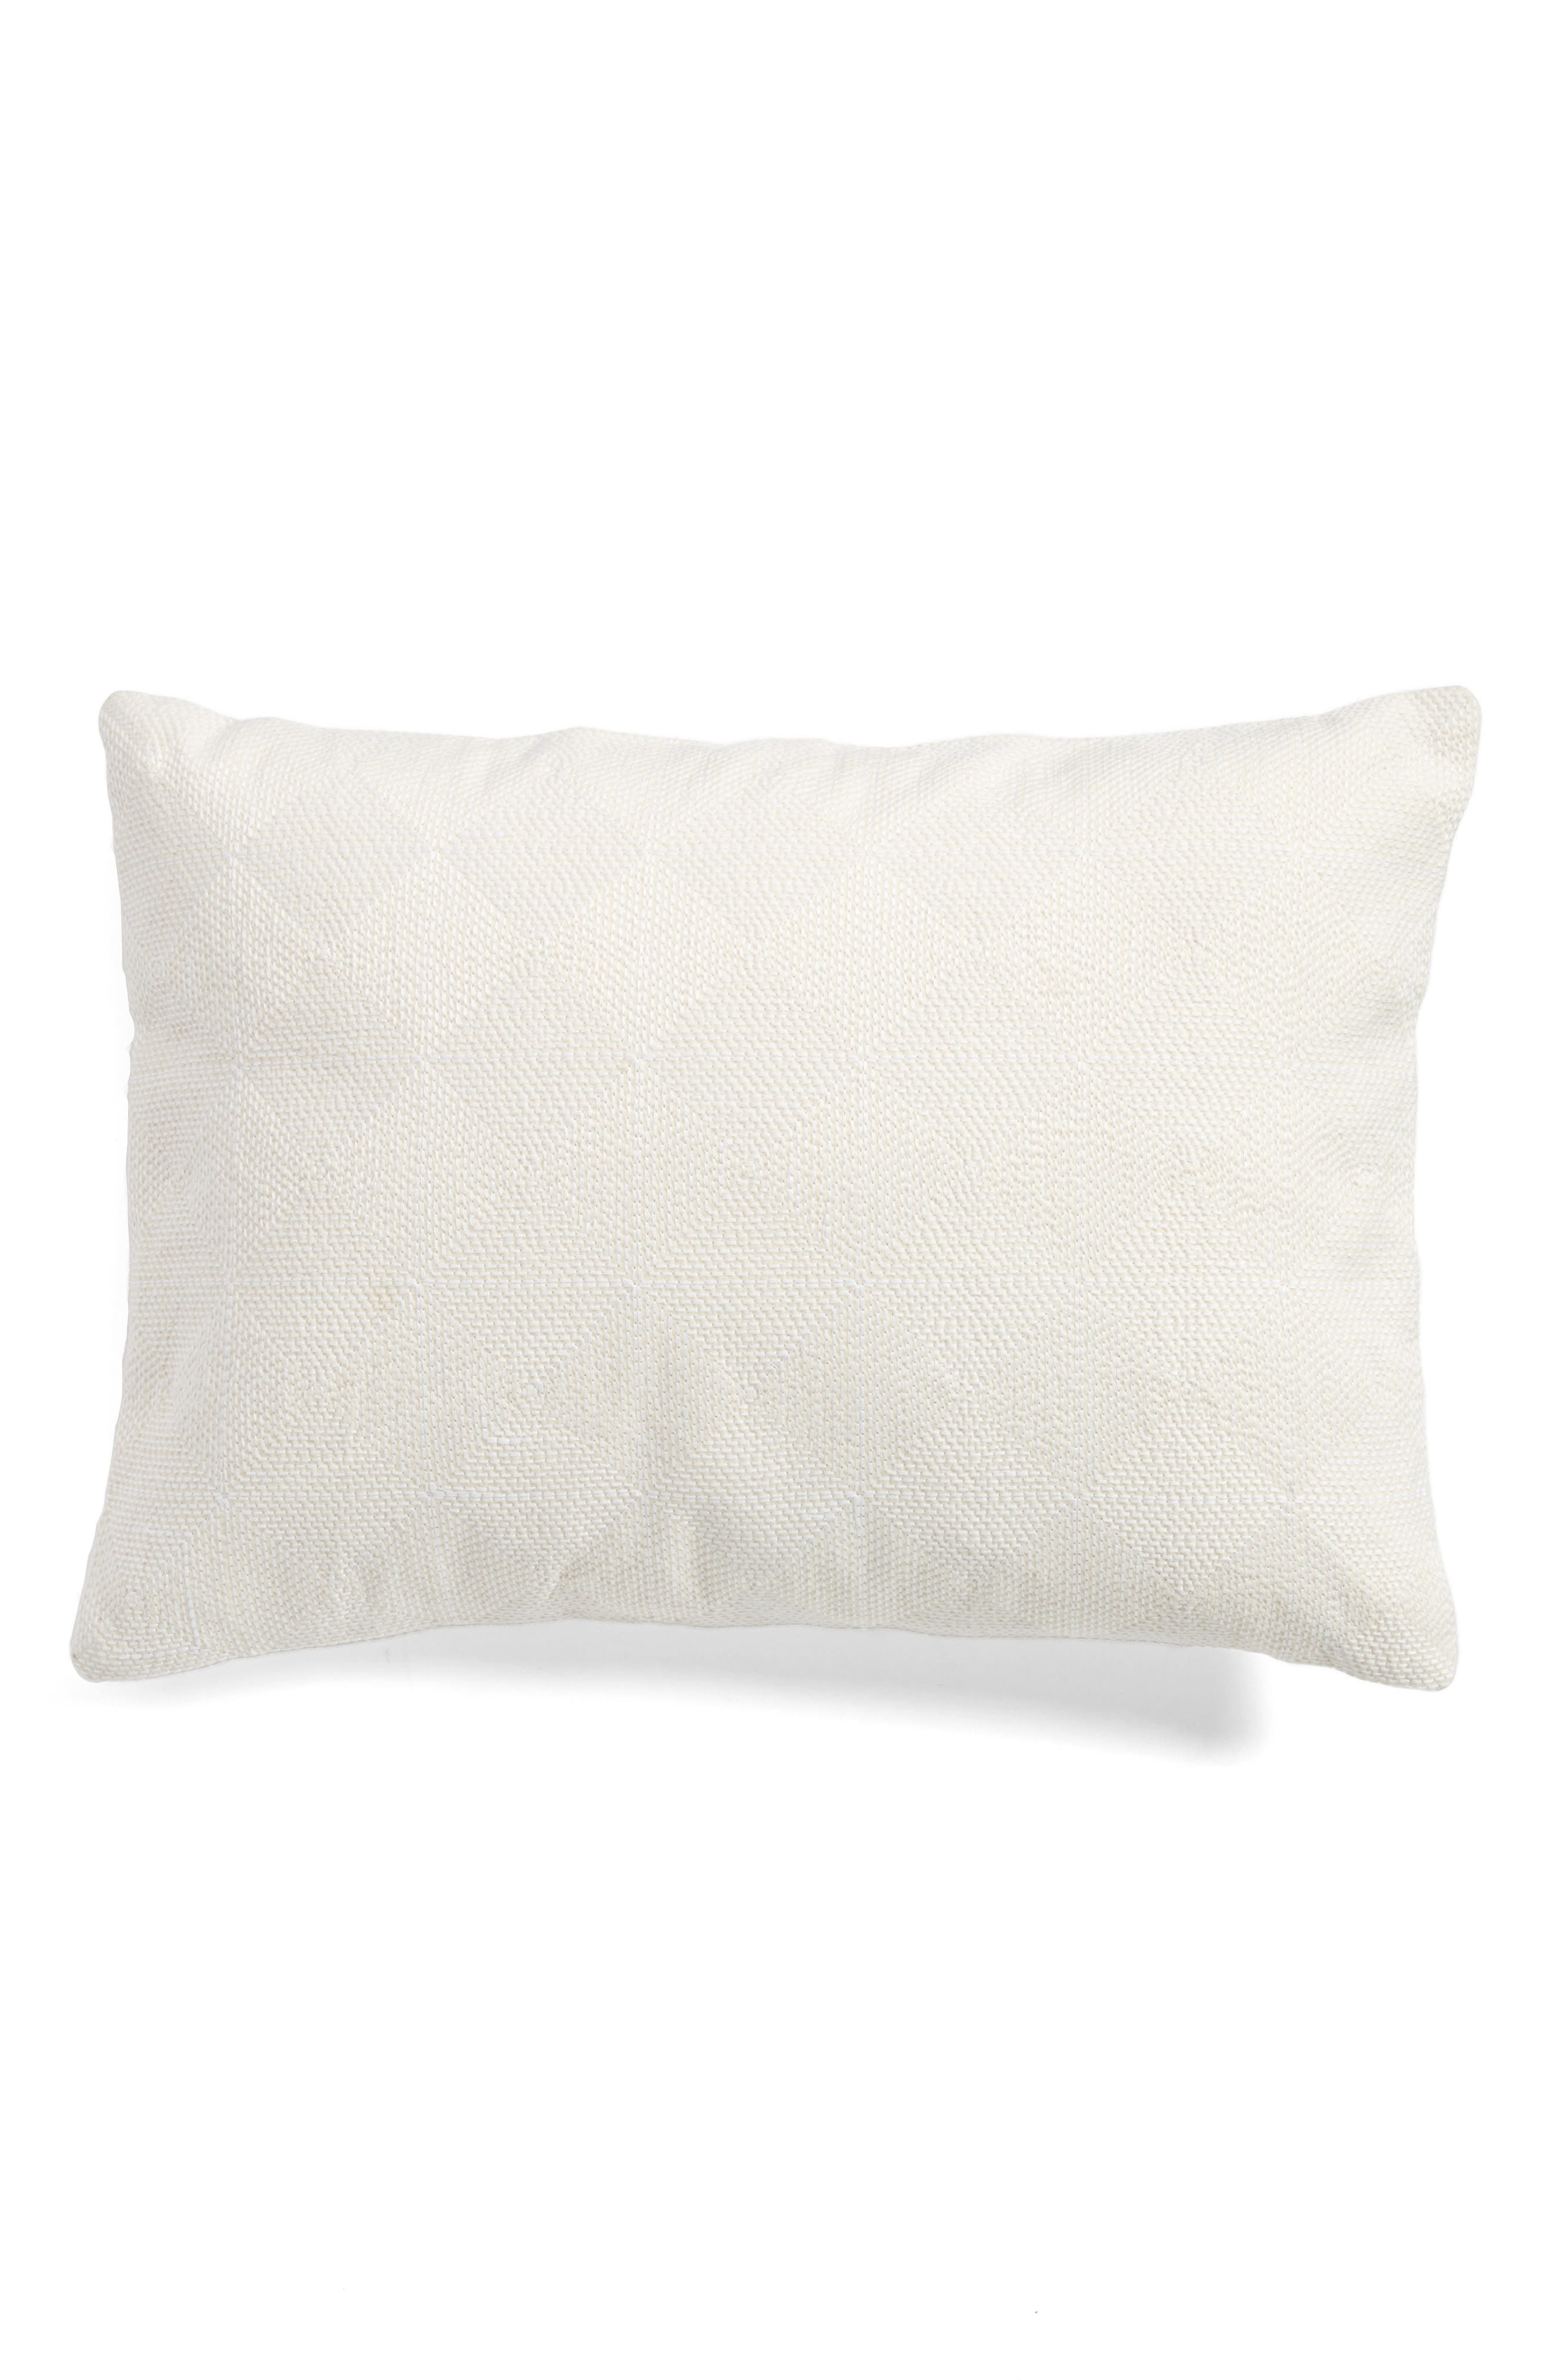 Fretwork Breakfast Pillow,                         Main,                         color, 250